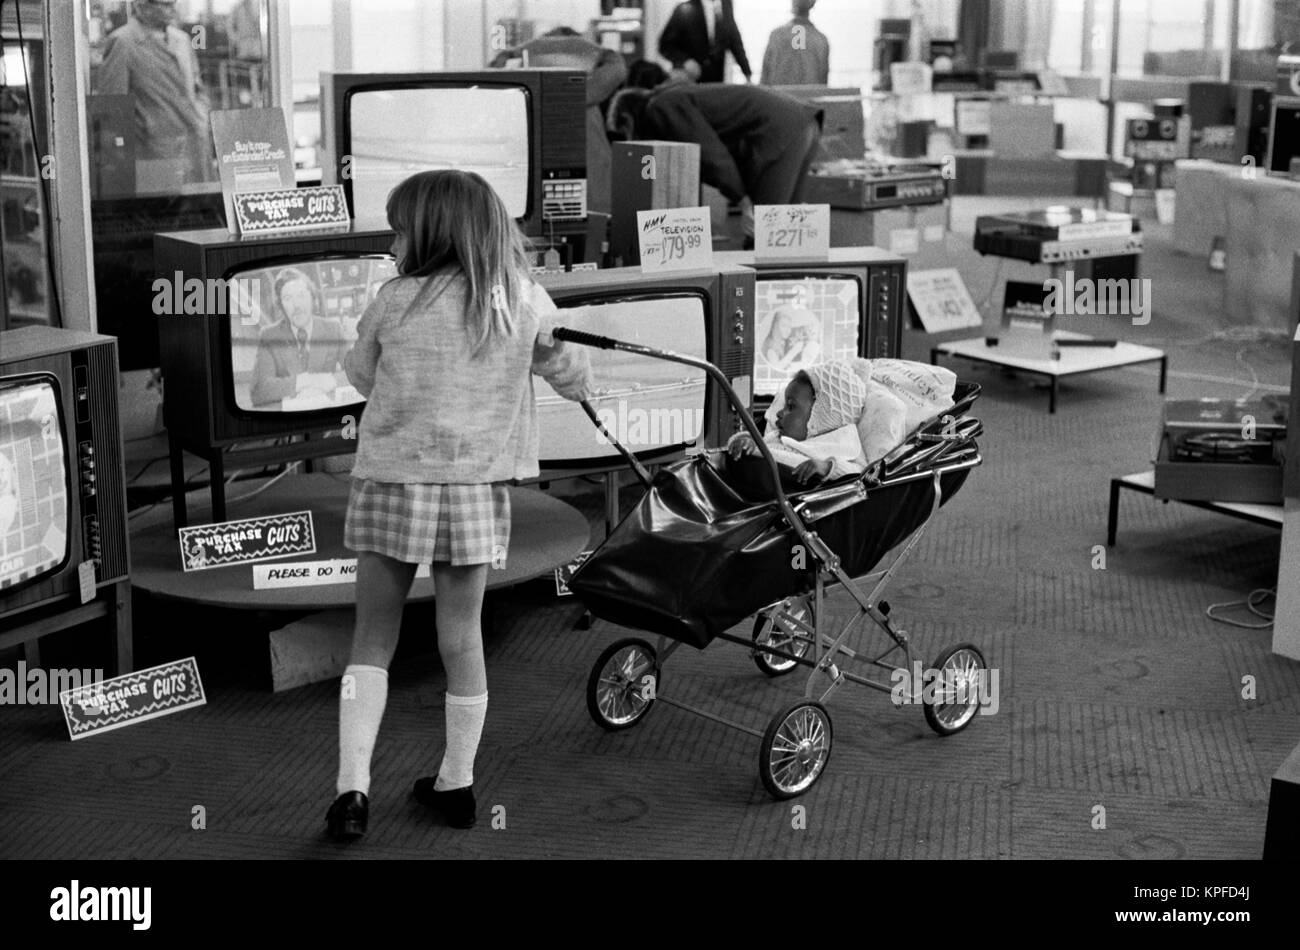 Ethnic diversity 1970s Uk, black African baby in pram being pushed around department store by white older sister - Stock Image